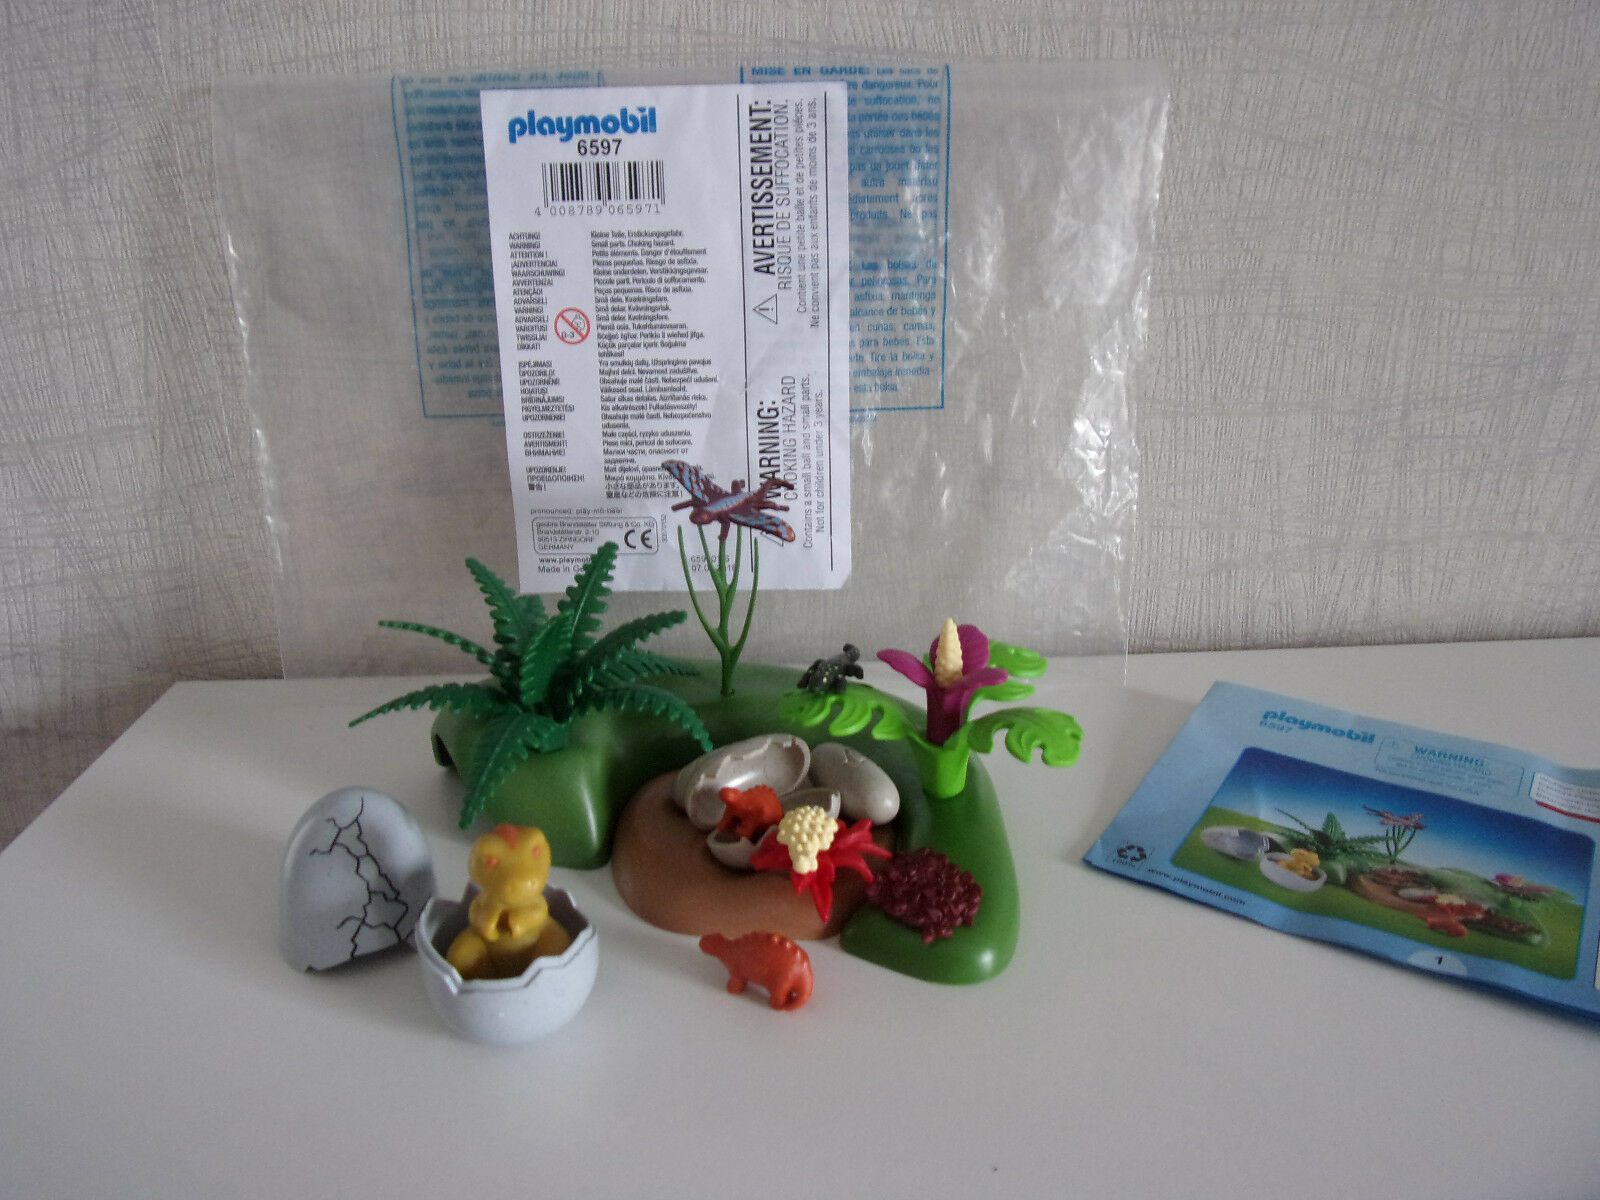 Playmobil Additions & Accessories - 6597 6597 6597 Dino-Babys in Nest - New 32e47a